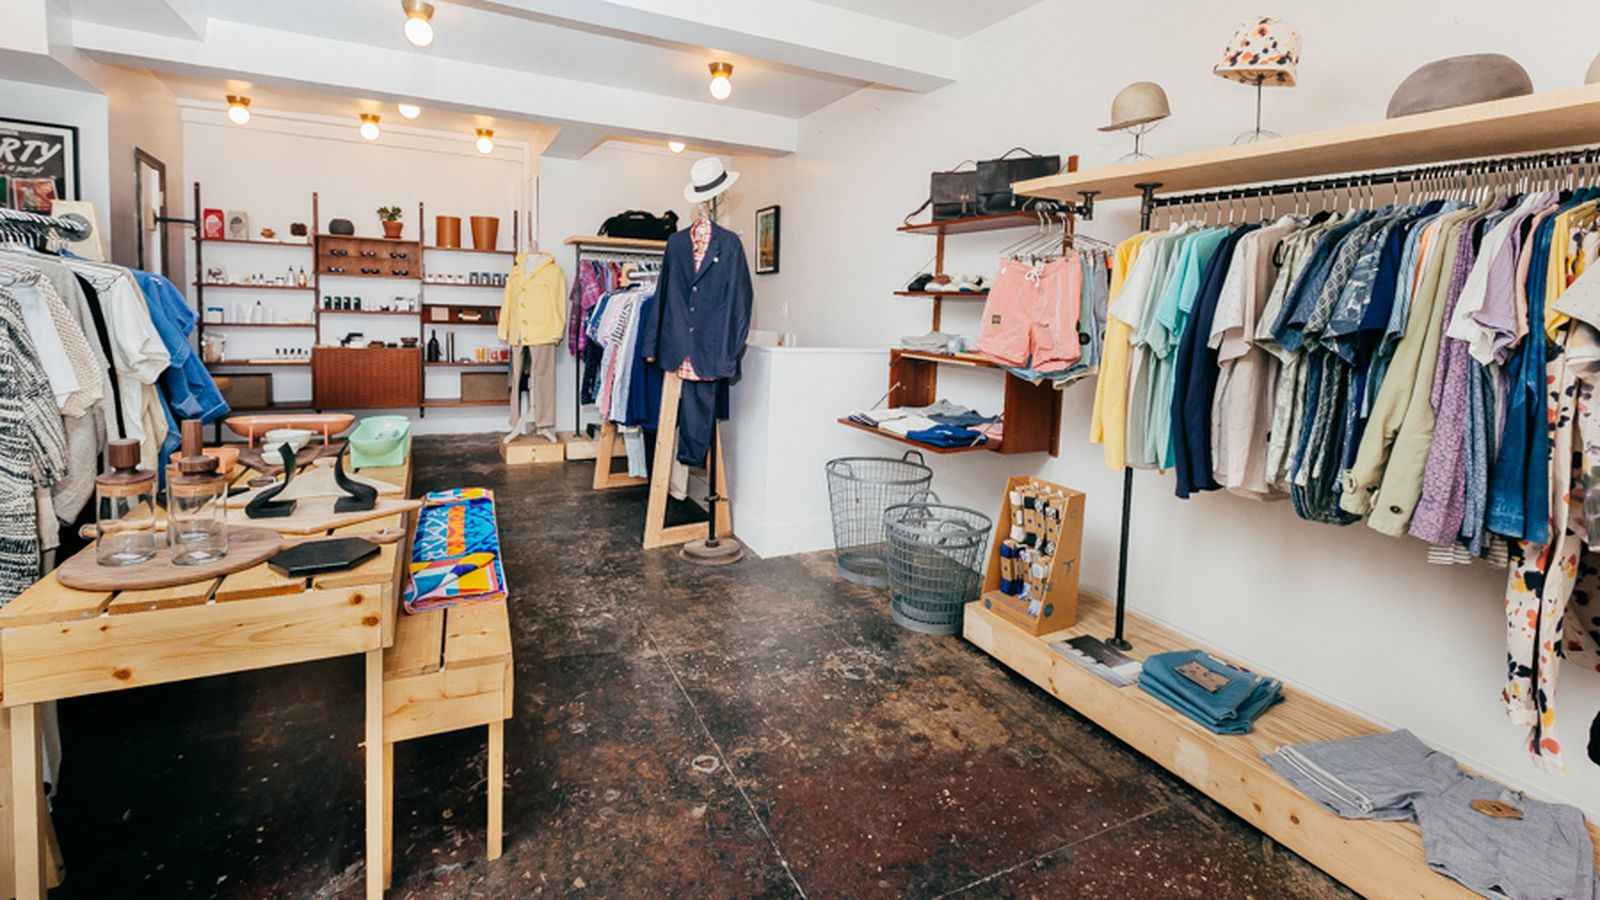 The definitive west village shopping guide racked ny for High end thrift stores nyc